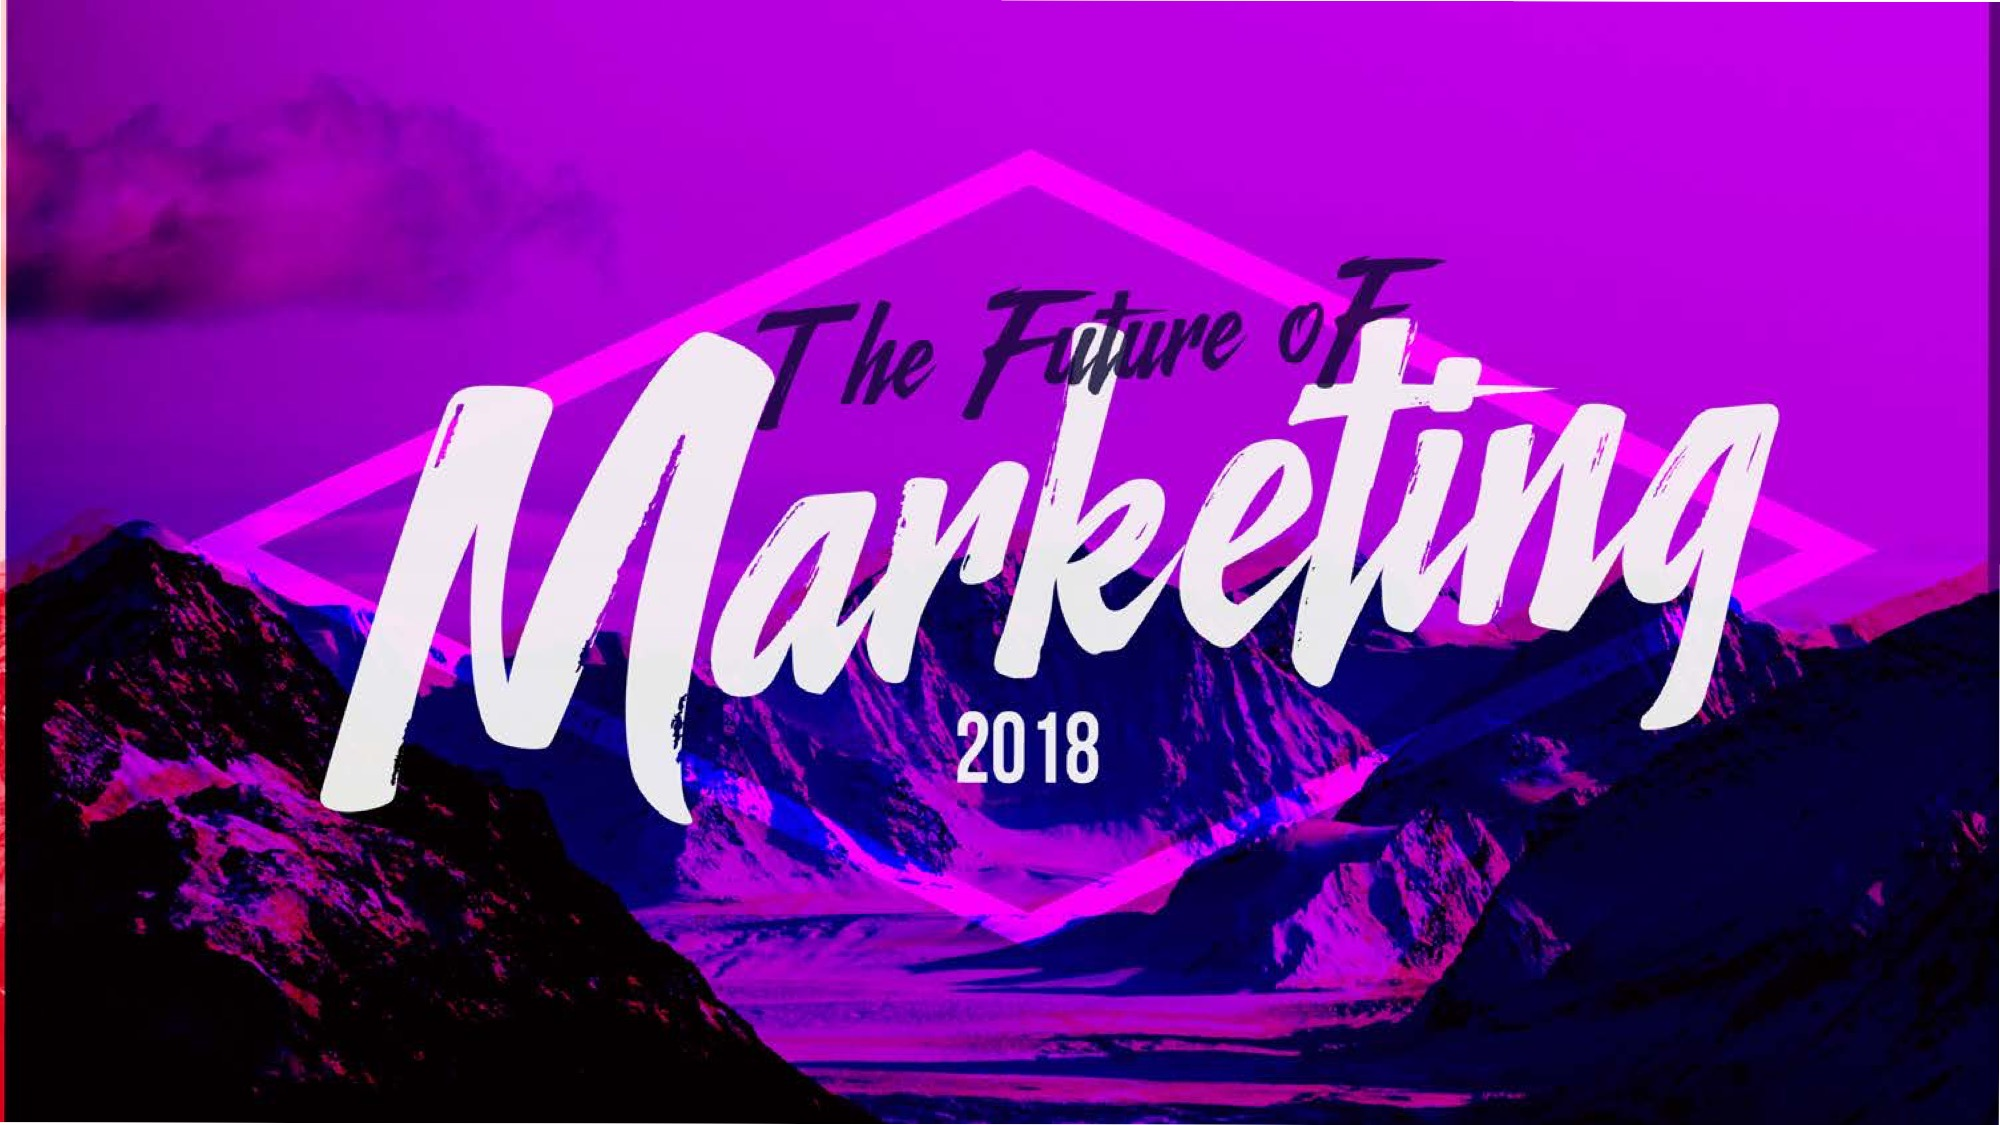 msweezey-future-marketing-2018-optimized